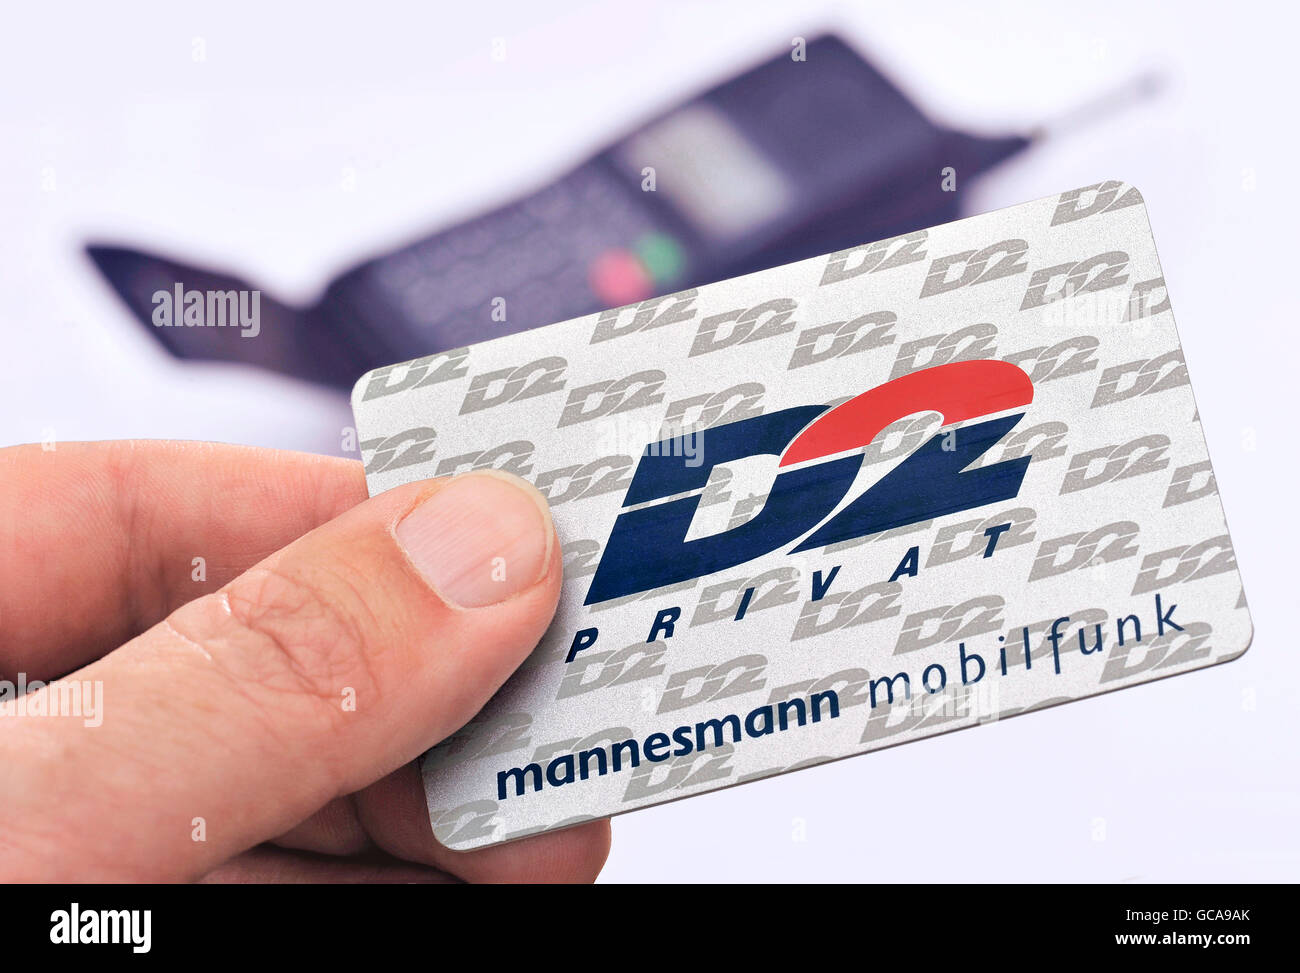 technics, telecommunications, mobile radio, D2 private, Mannesmann, first private German wireless carrier, phonecard, - Stock Image